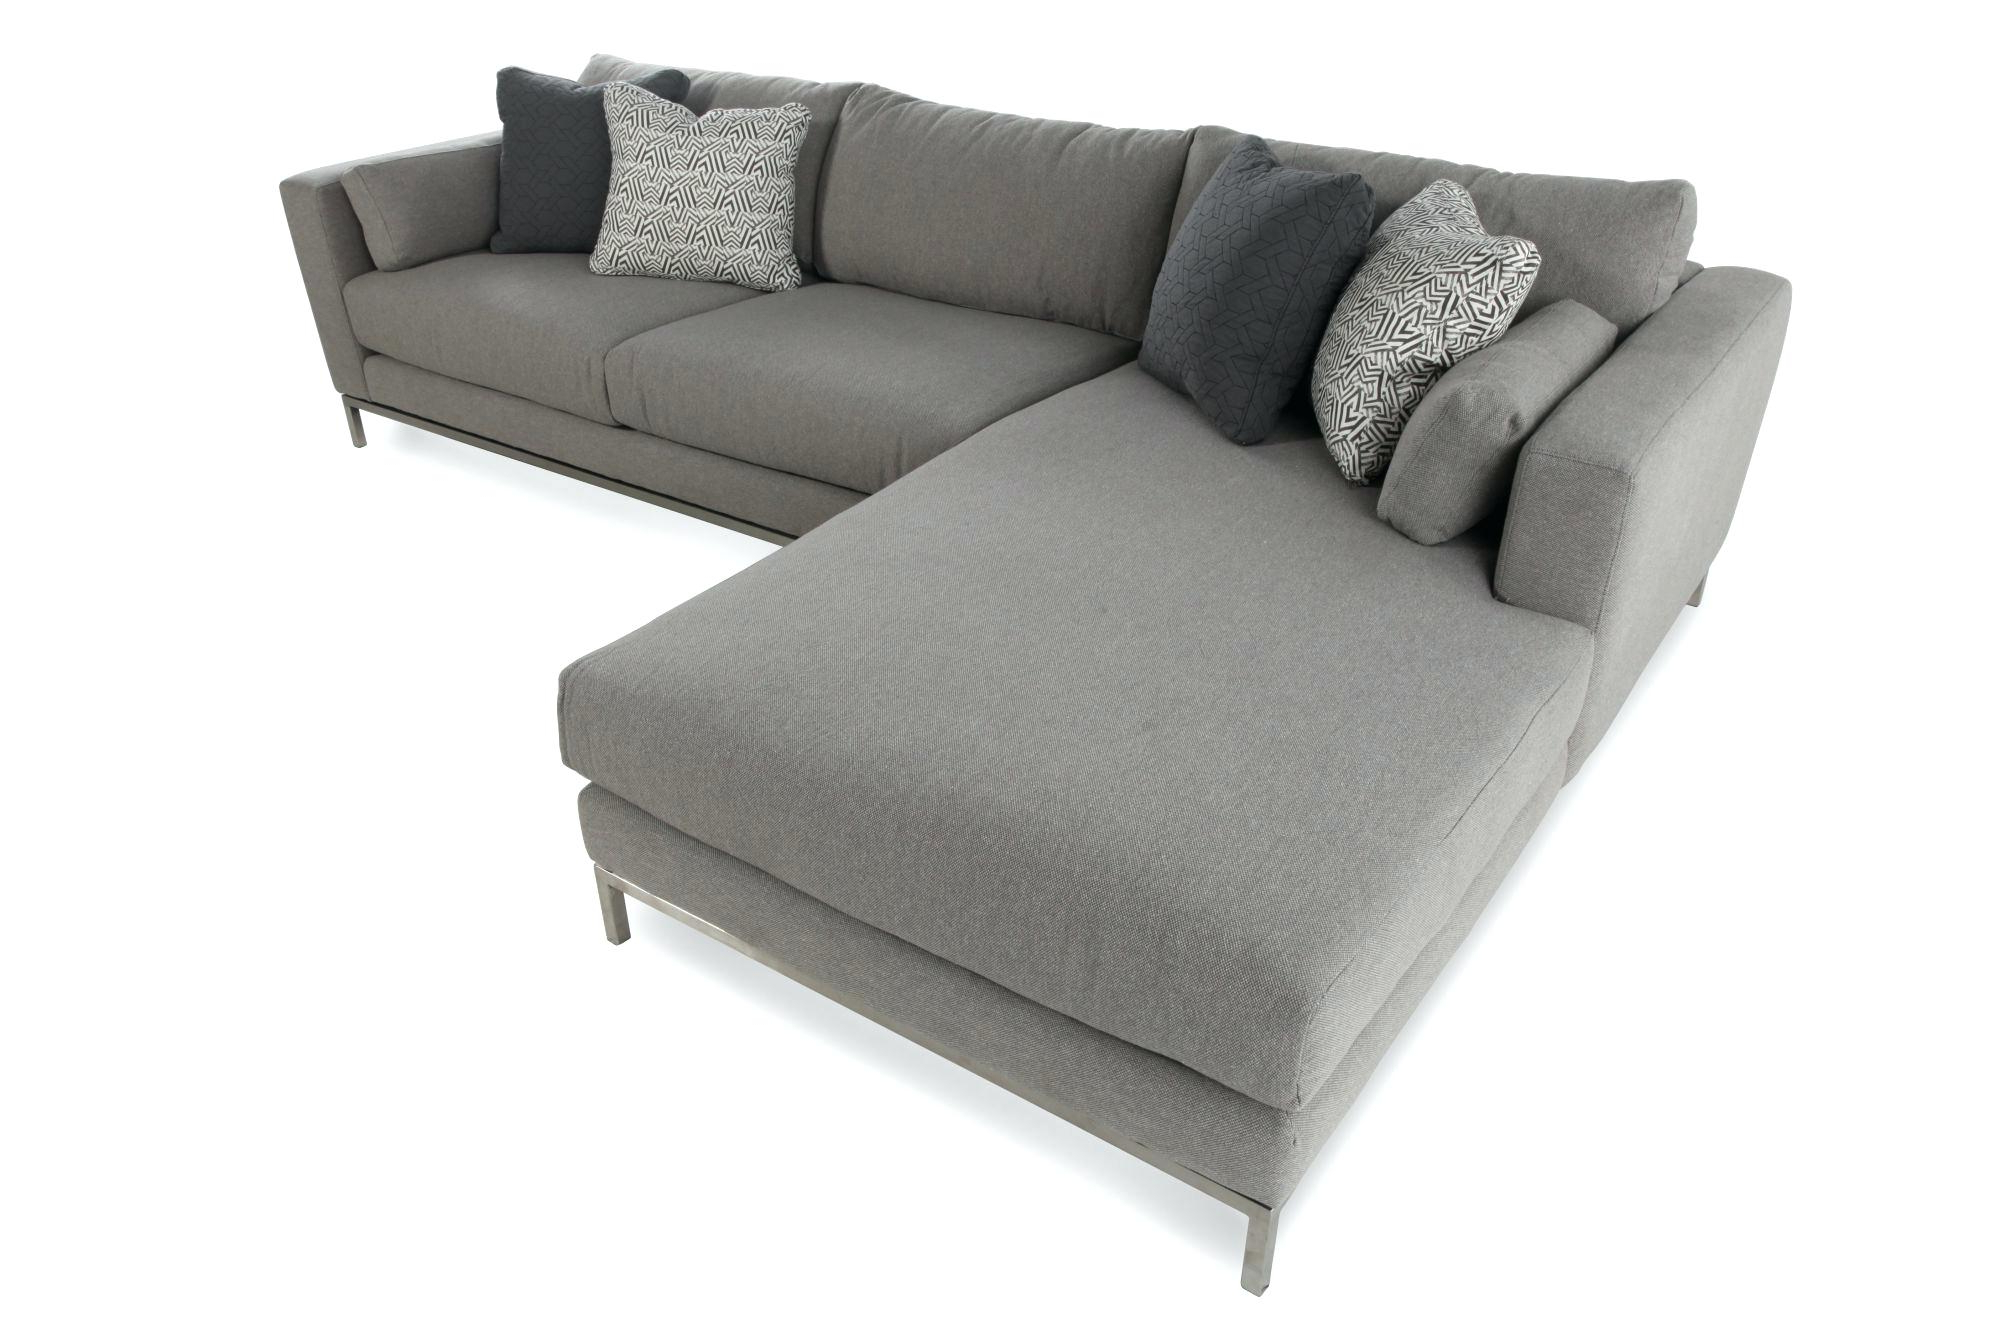 2 Piece Sectional Sofa Canada (View 1 of 20)